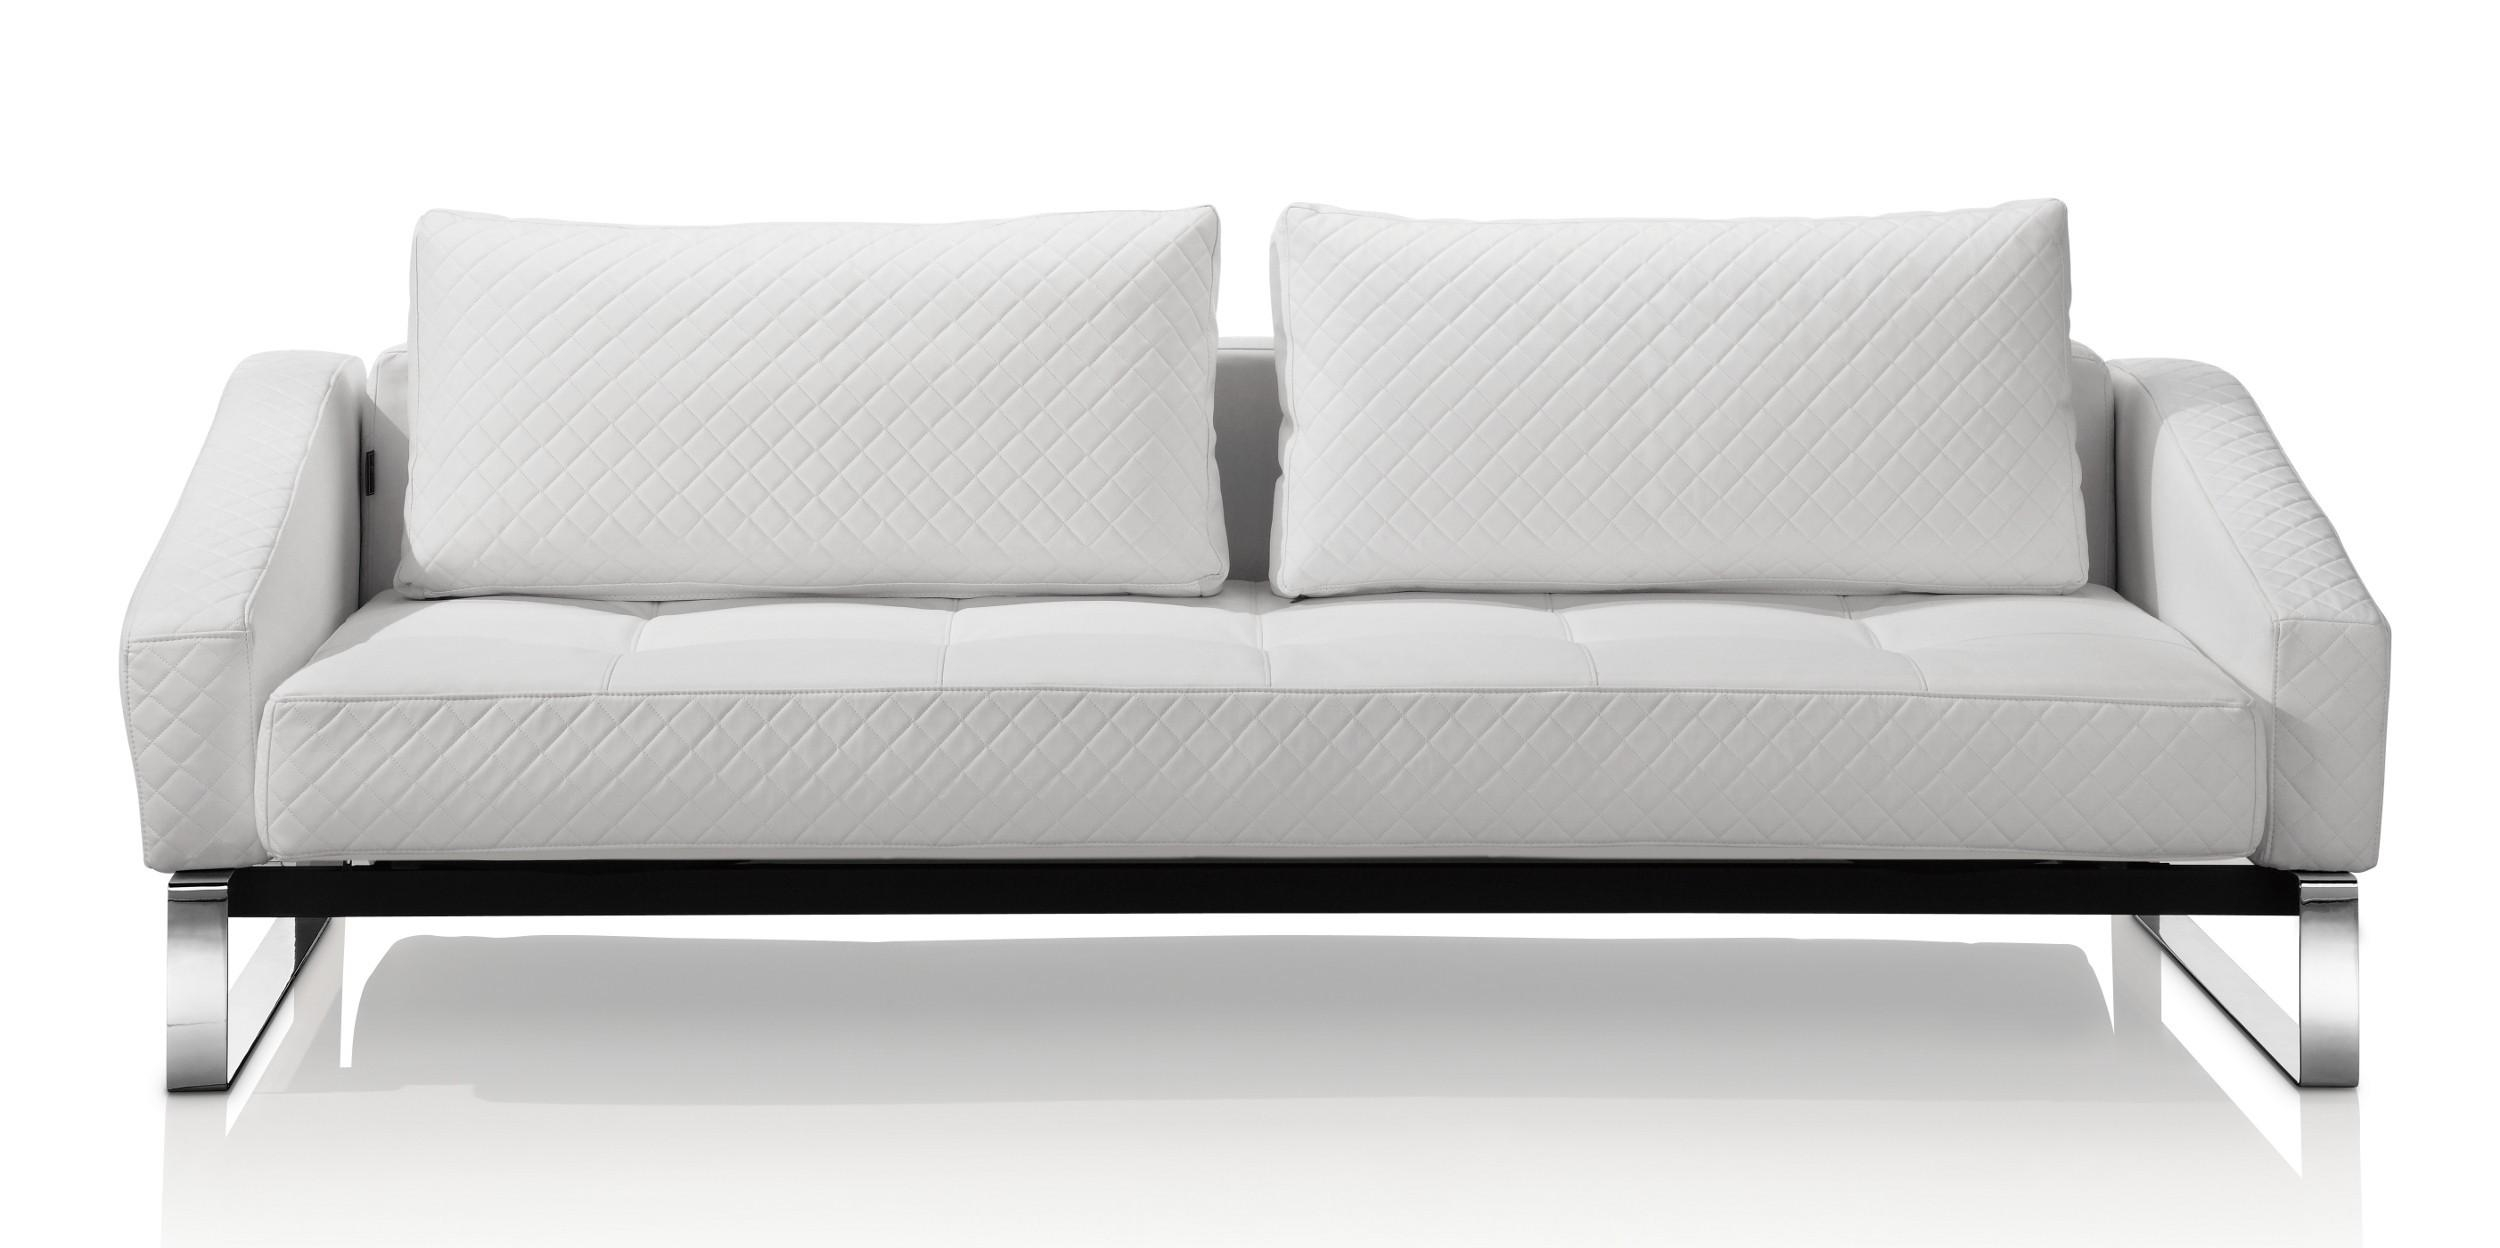 Best White Fabric Sofa 21 On Sofas And Couches Set With White inside White Fabric Sofas